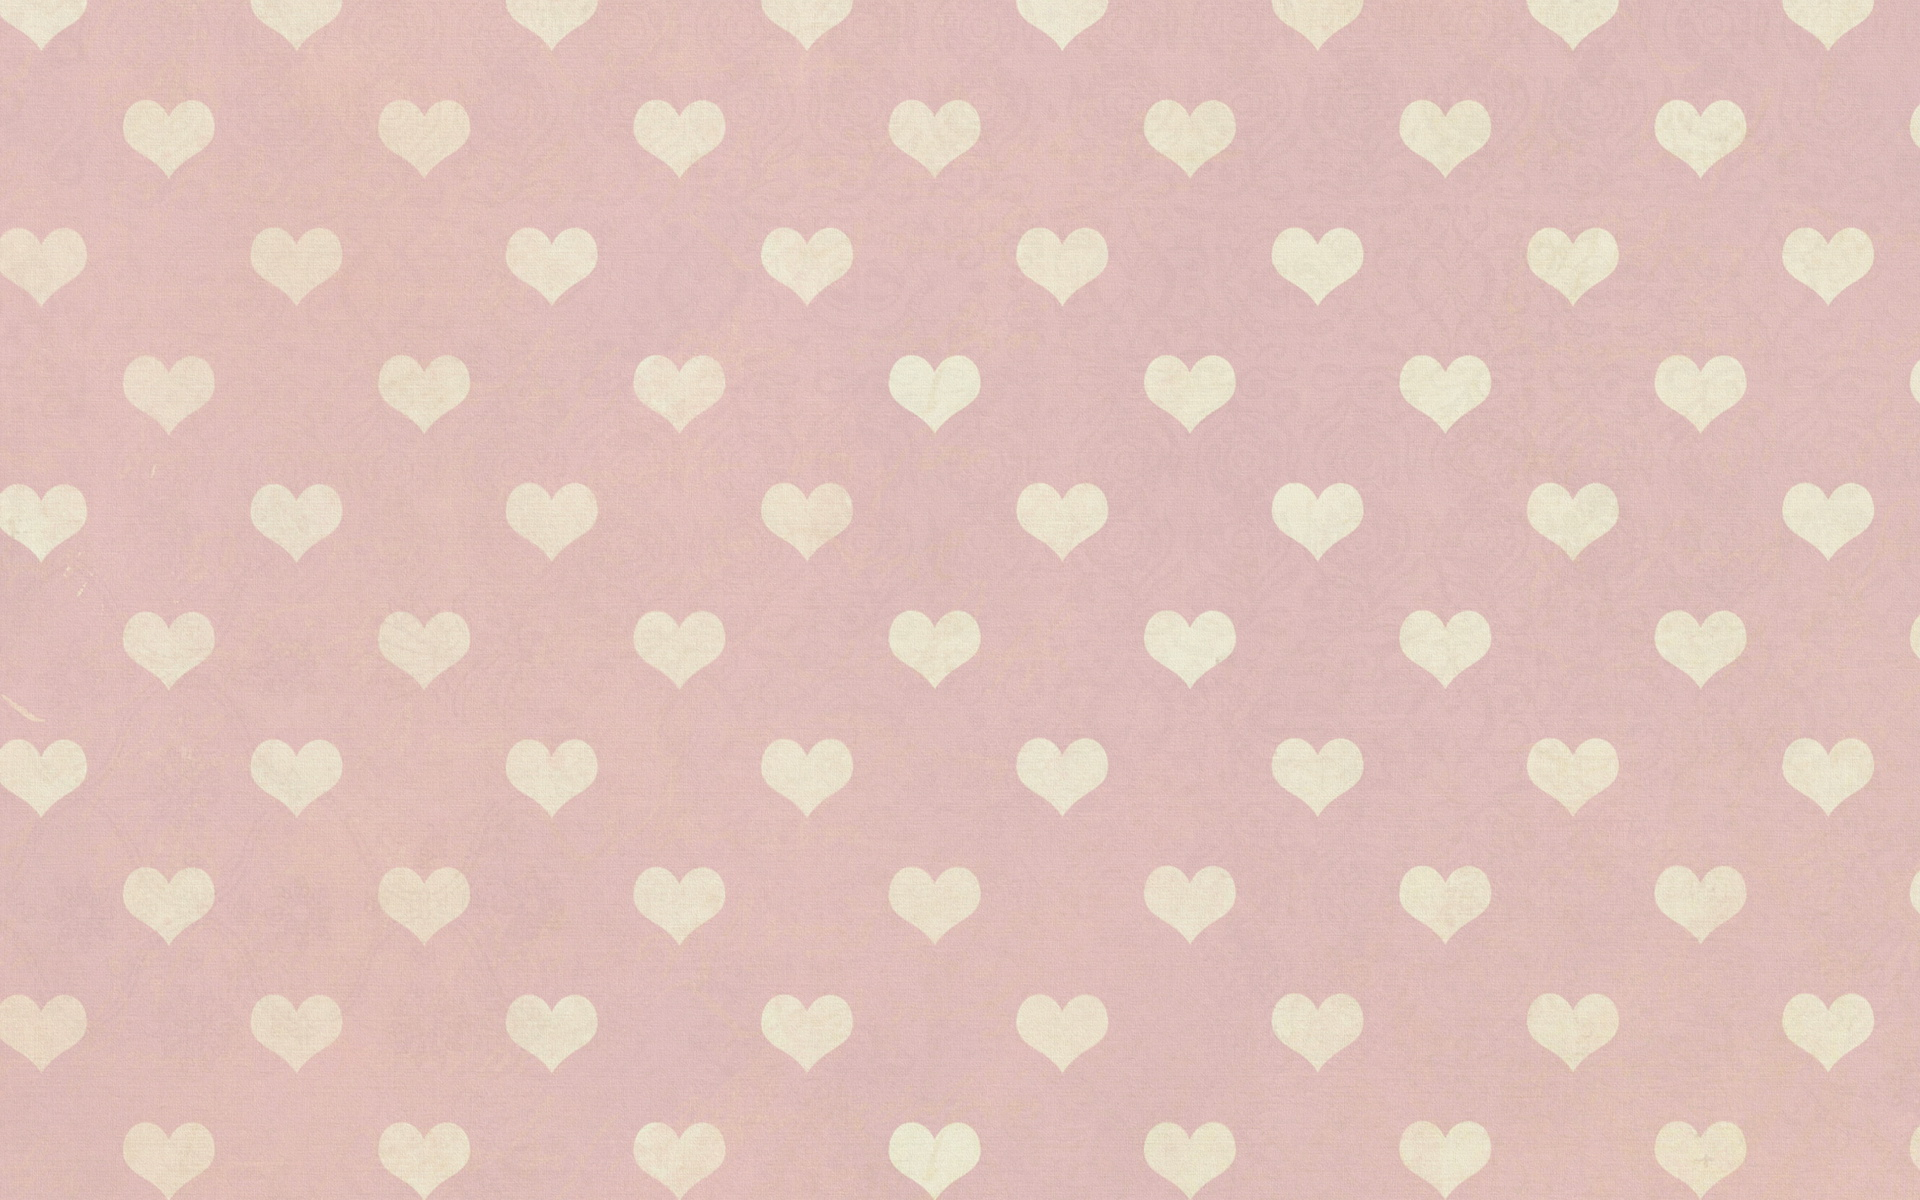 Love Heart Design Wallpaper : Free Heart Pattern Wallpaper 41521 1920x1200 px ~ HDWallSource.com